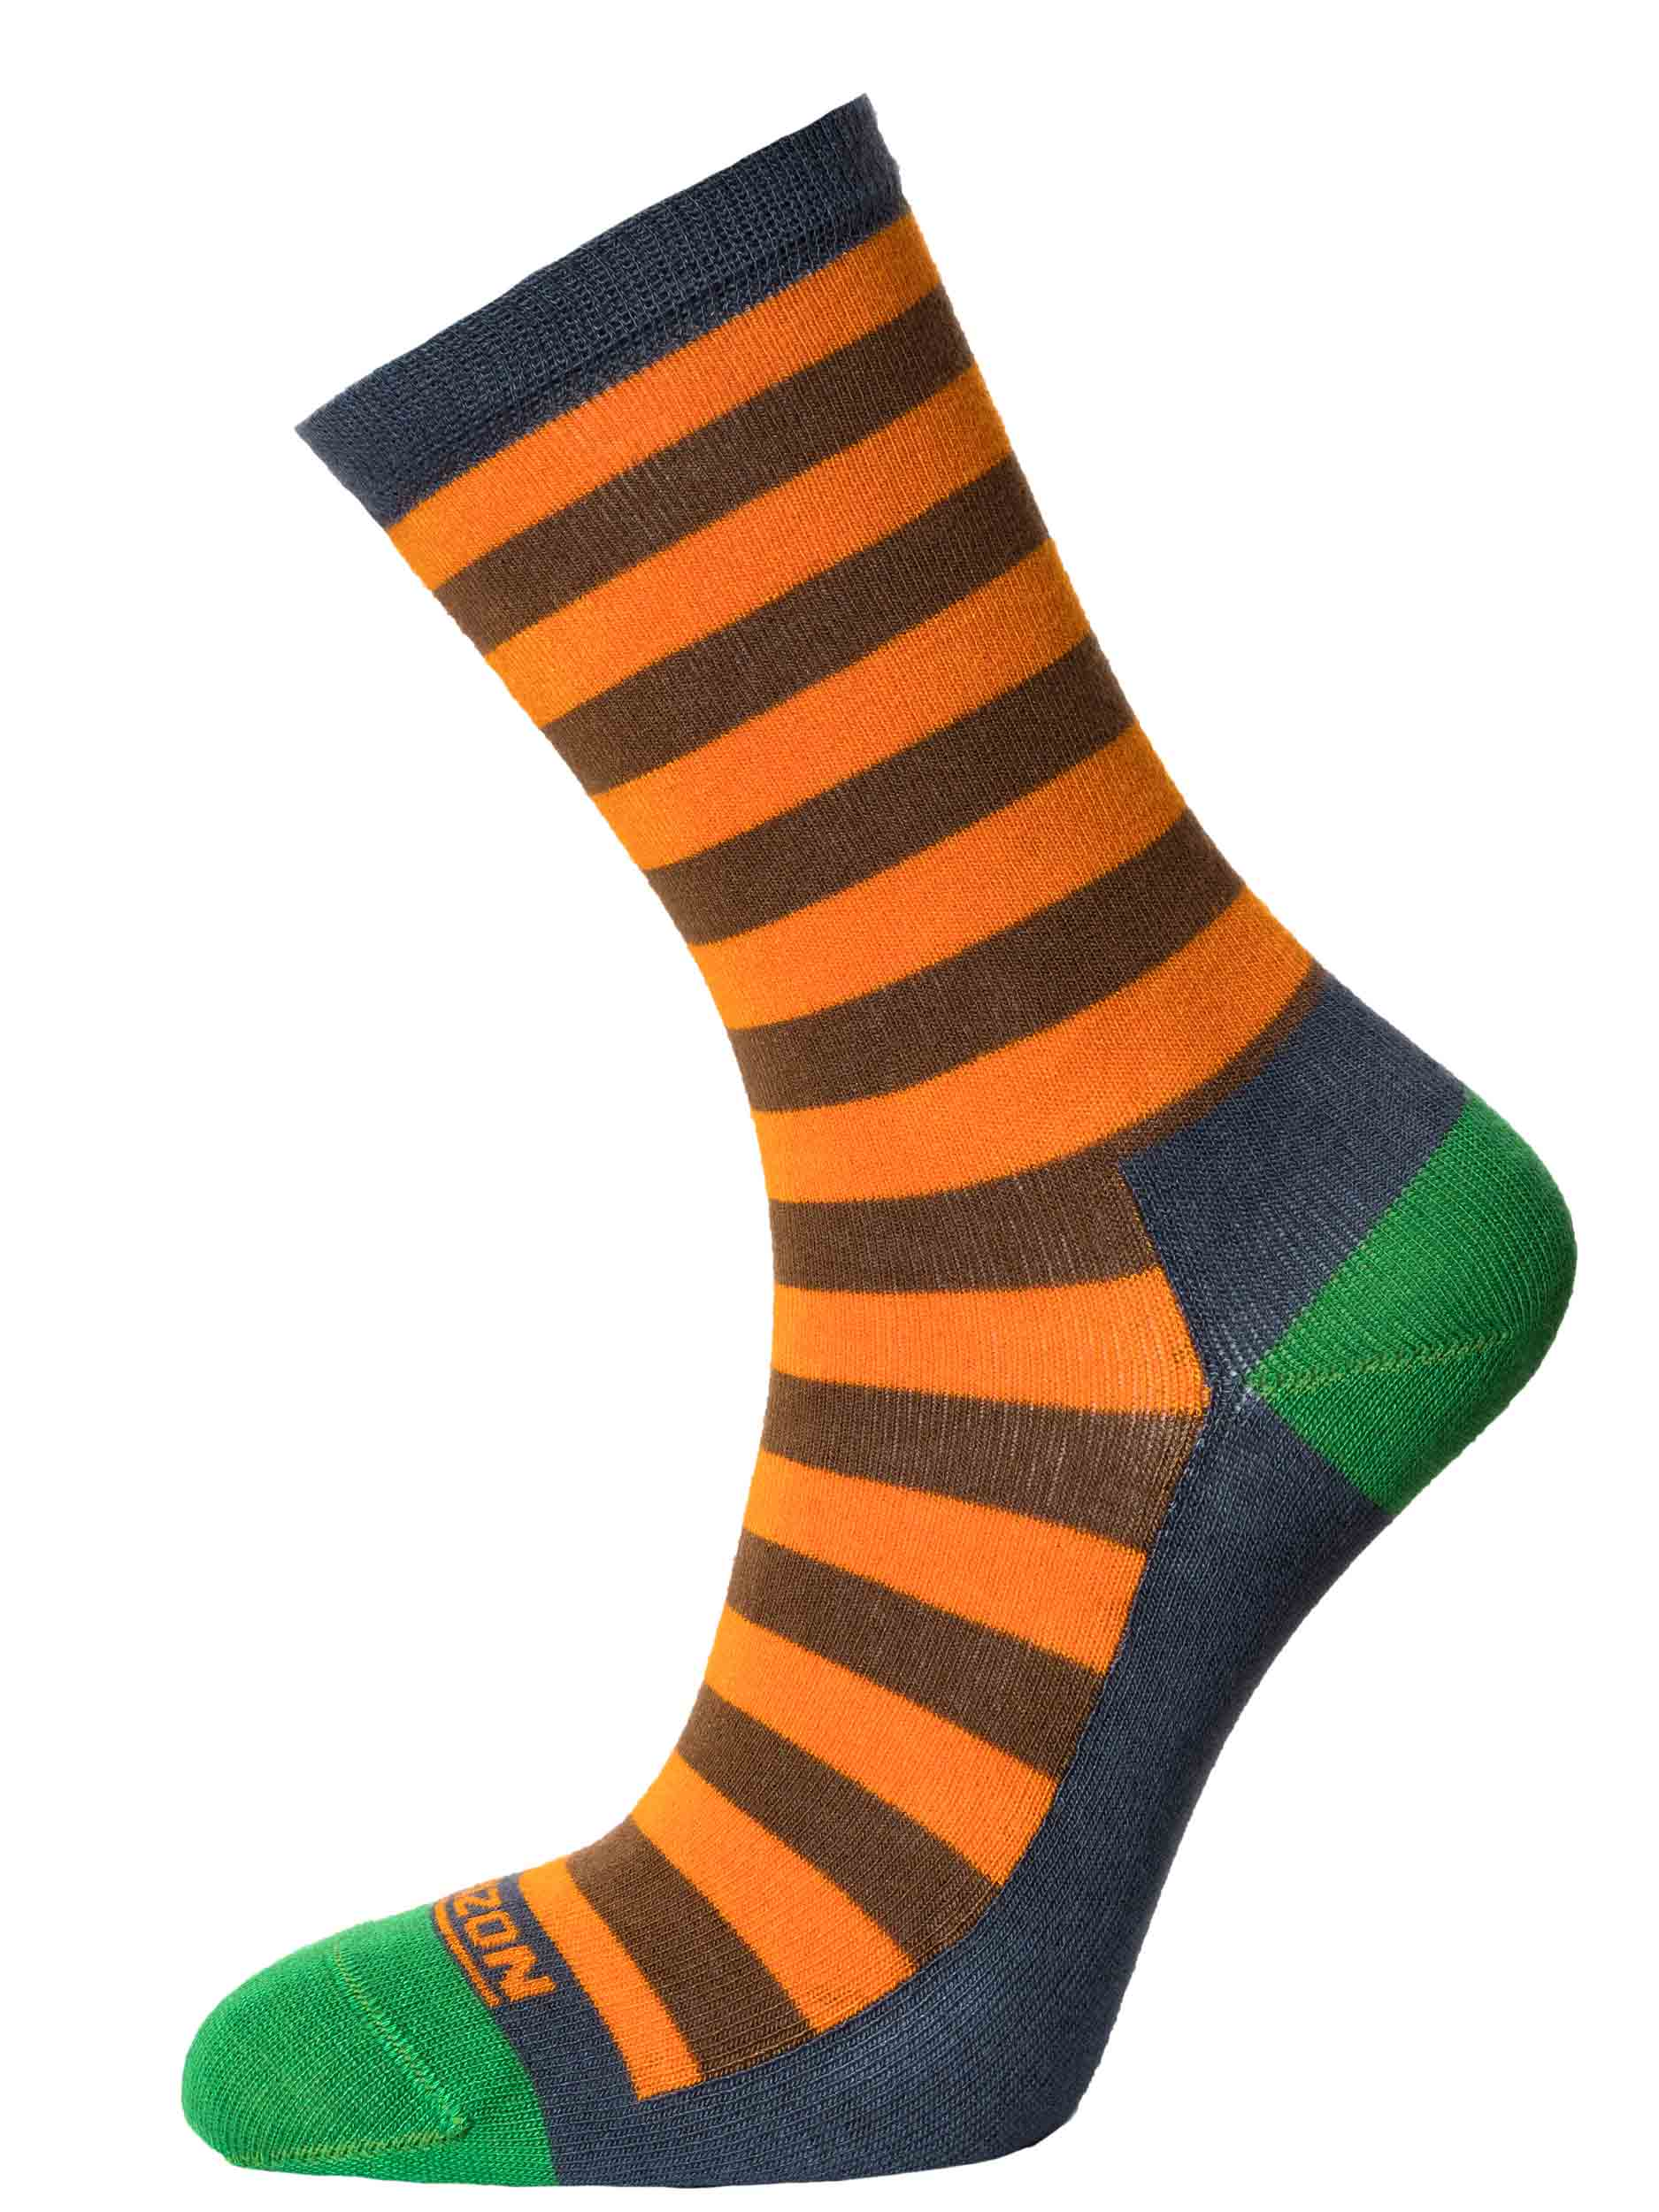 Lifestyle Women's Bamboo Orange/Green